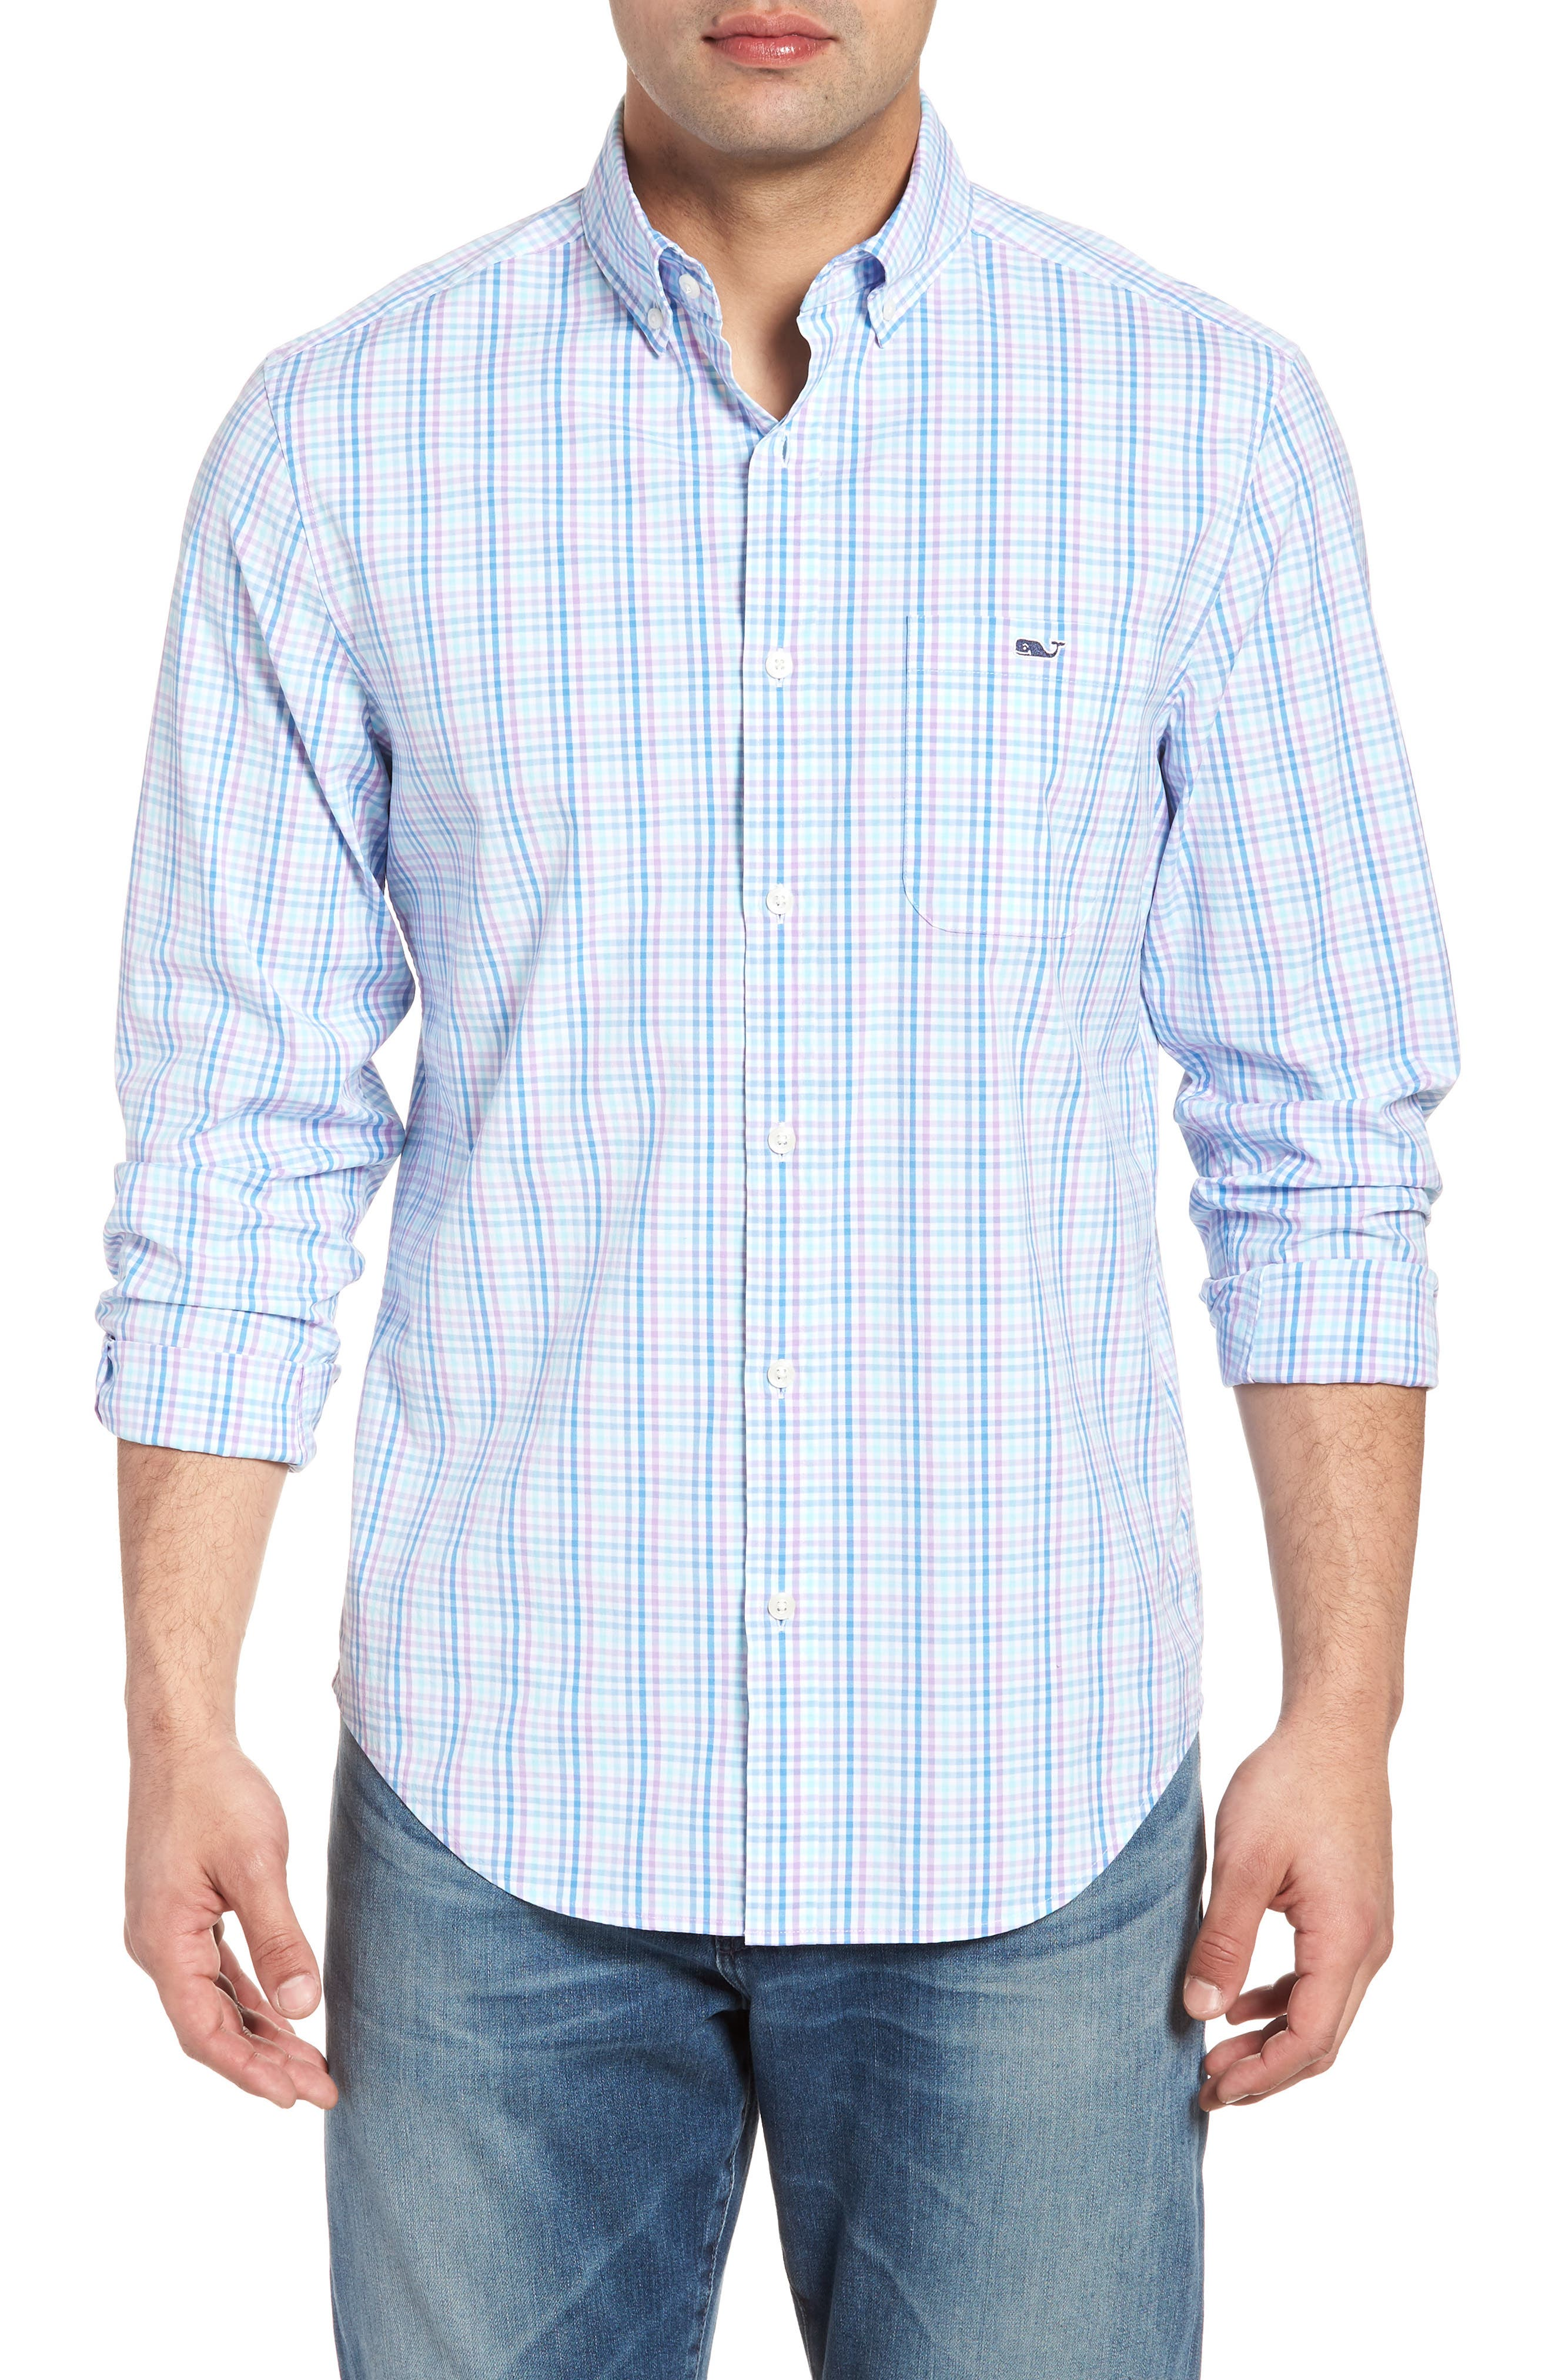 Friendly Island Classic Fit Stretch Check Sport Shirt,                             Main thumbnail 1, color,